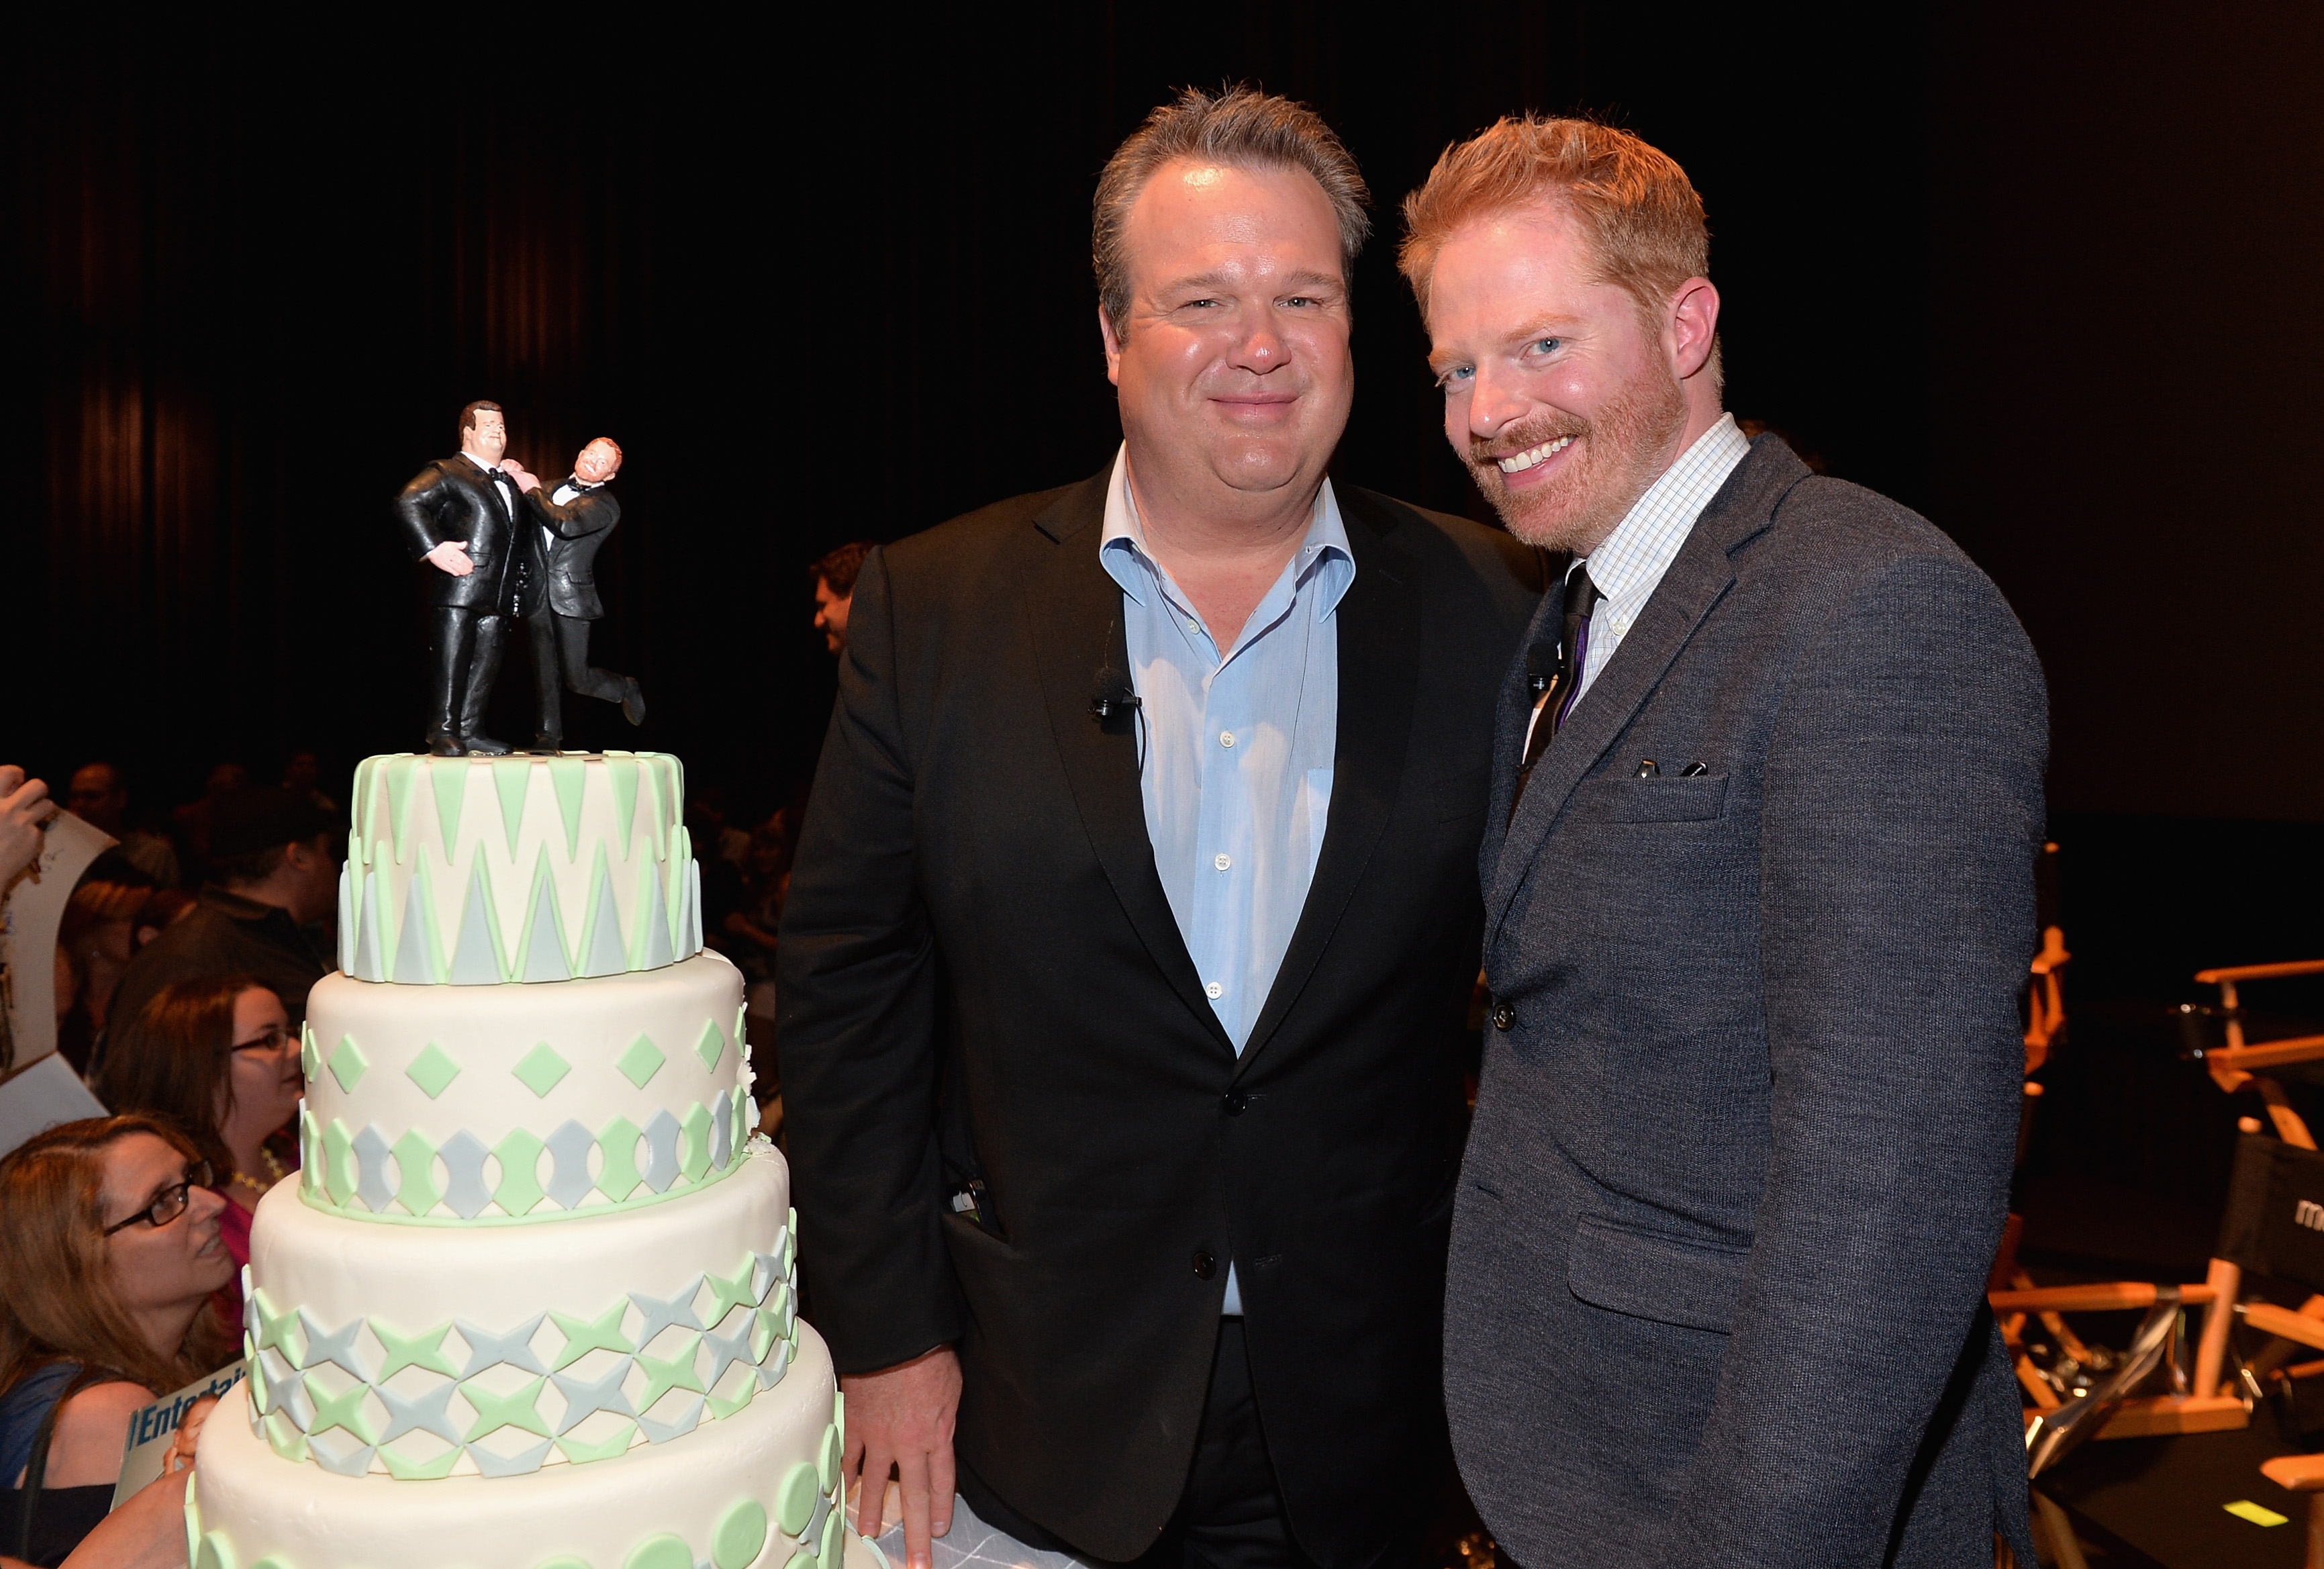 Actors Eric Stonestreet and Jesse Tyler Ferguson attend a  Modern Family  Wedding episode screening at Zanuck Theater at 20th Century Fox Lot on May 19, 2014 in Los Angeles, California.